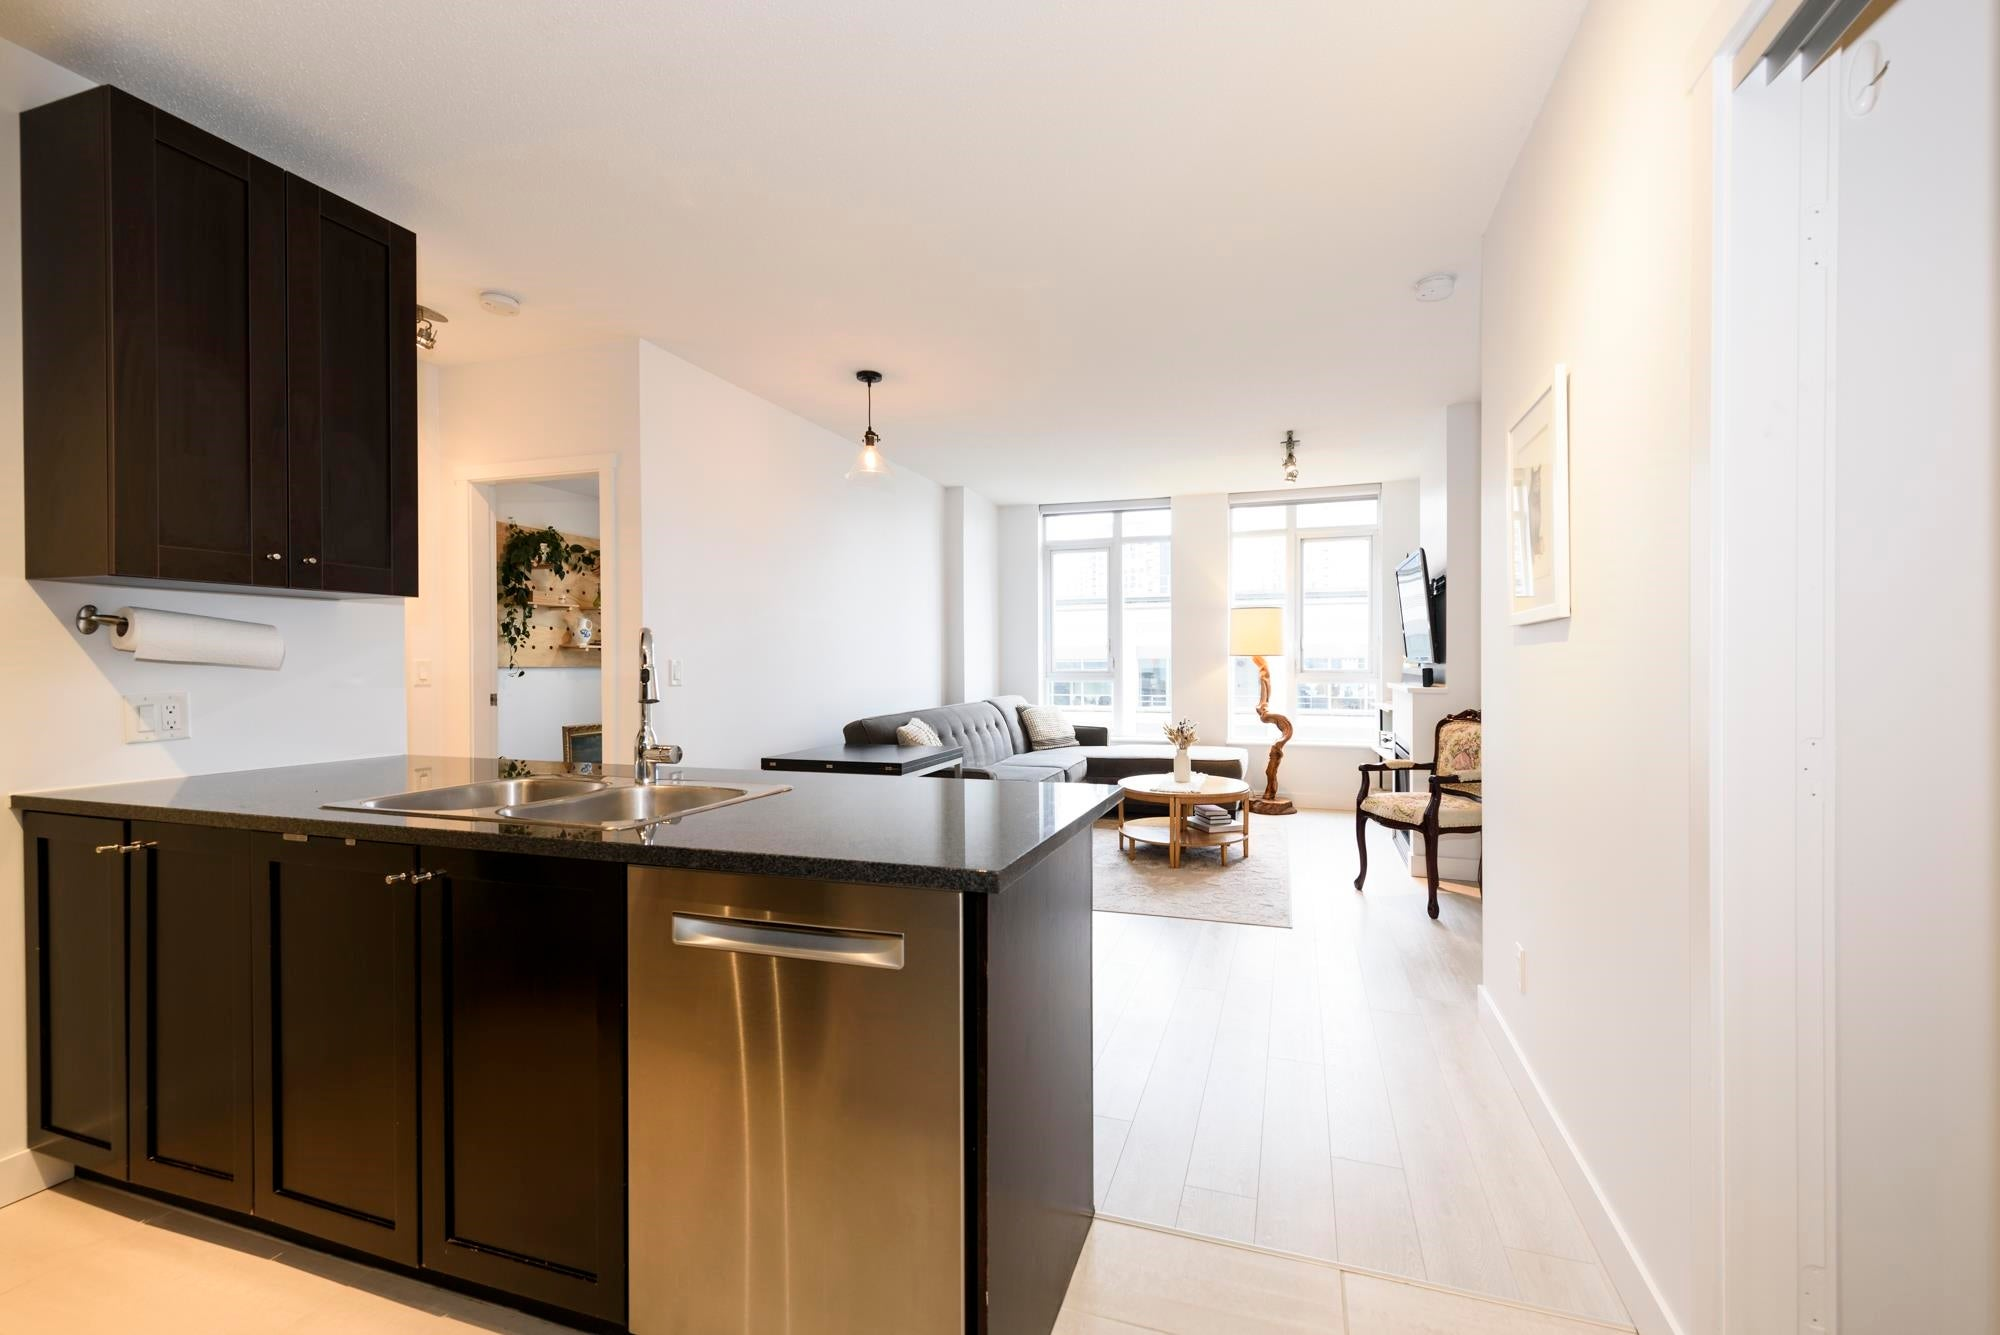 505 1001 HOMER STREET - Yaletown Apartment/Condo for sale, 2 Bedrooms (R2626403) - #1